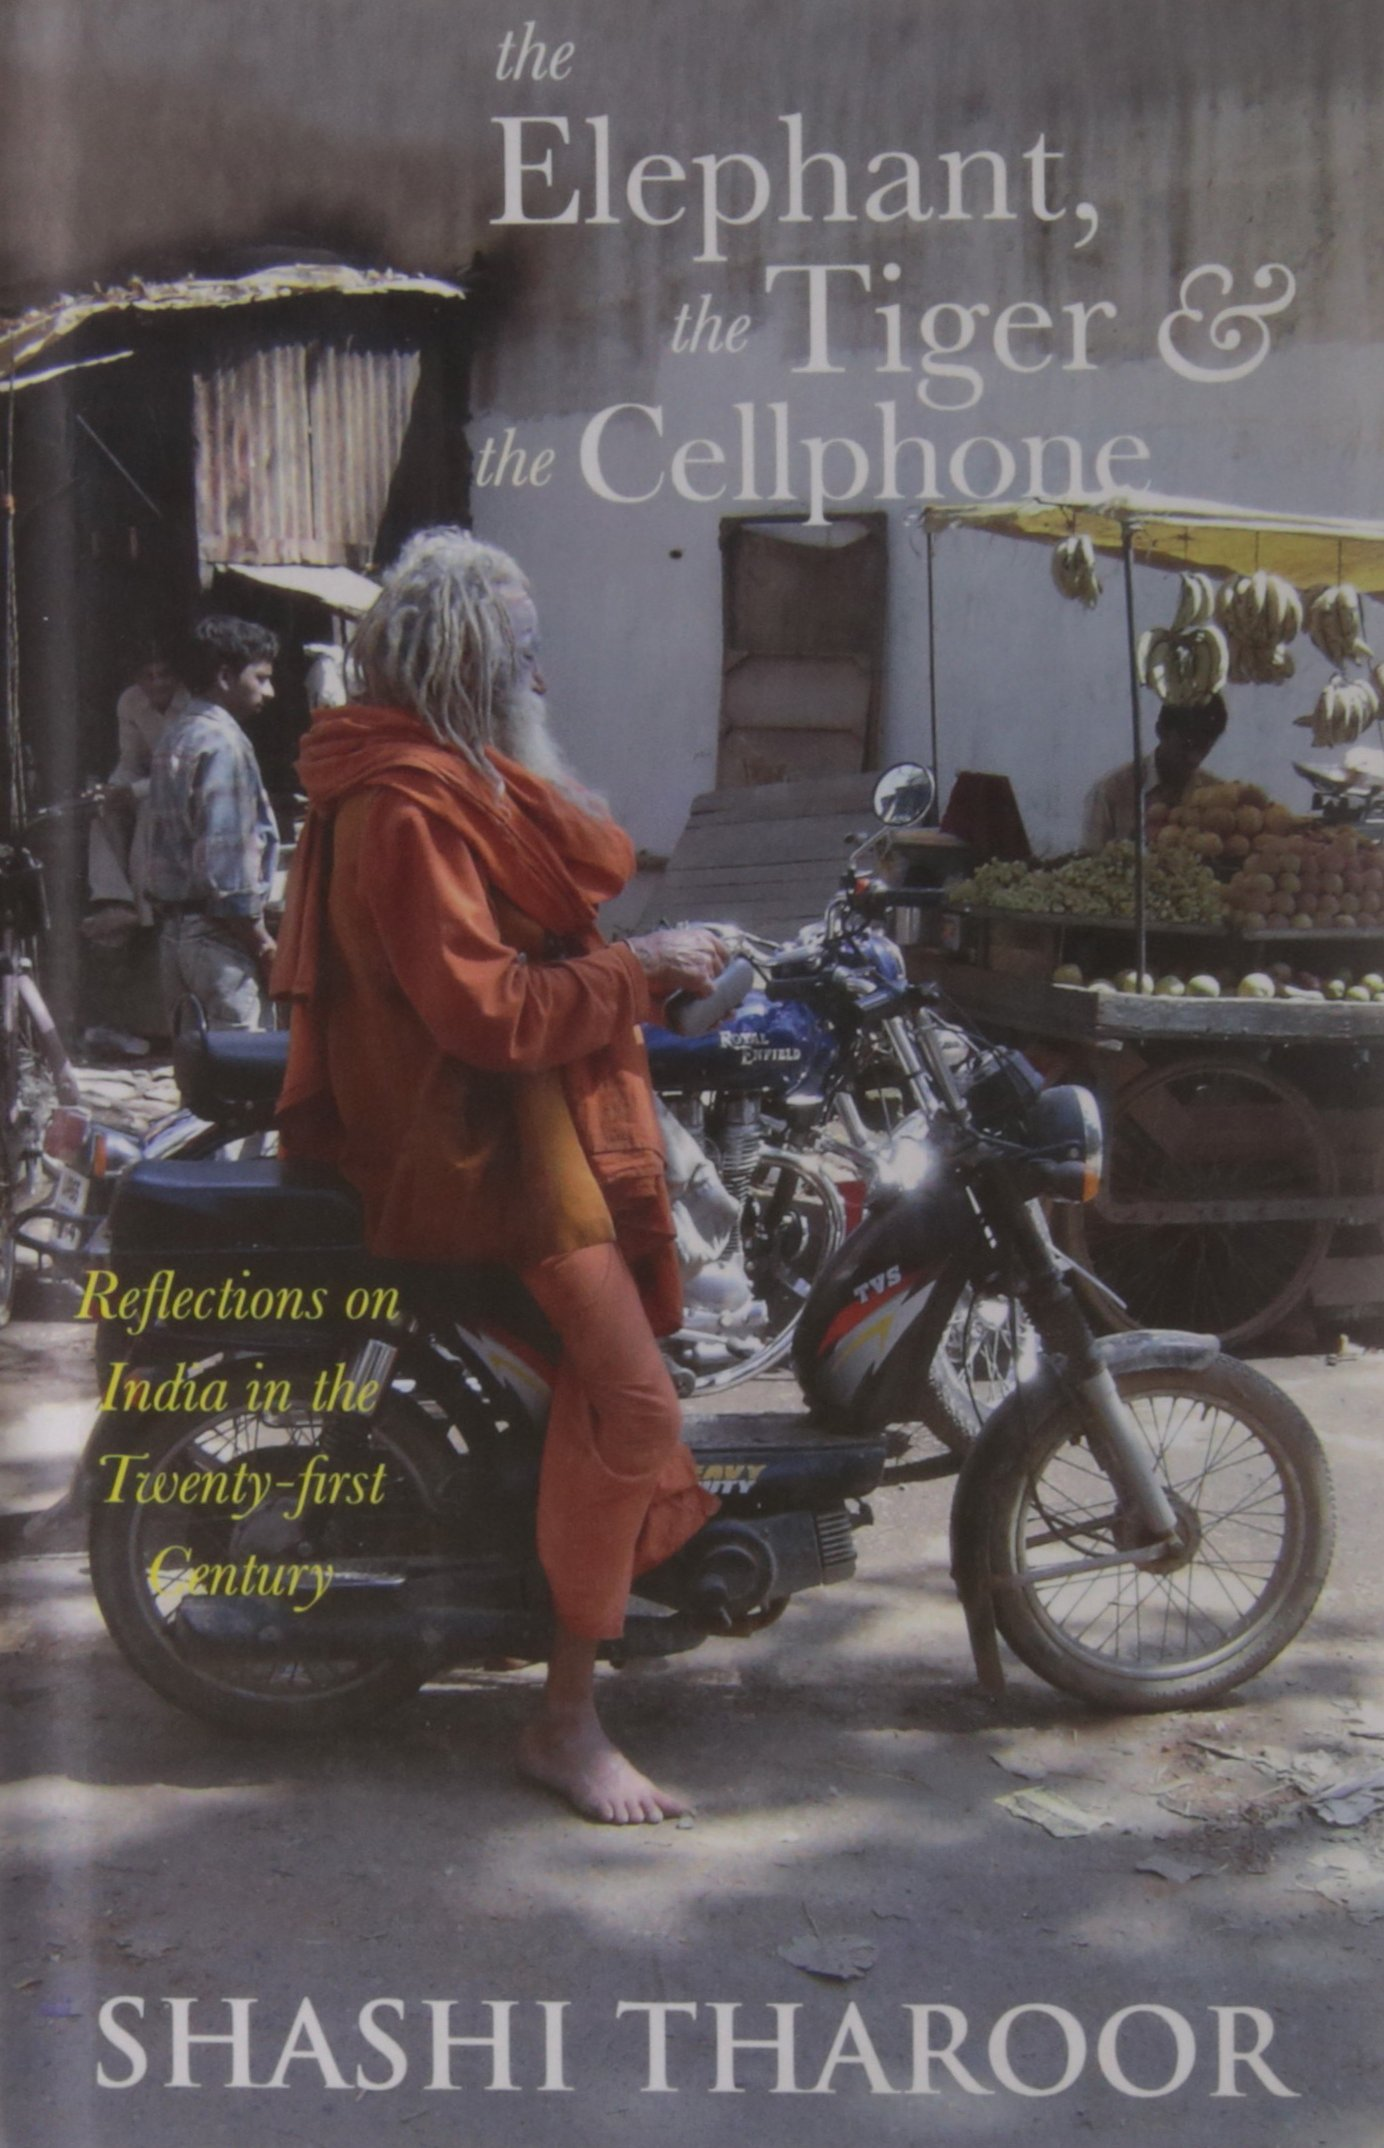 """Image result for Amazon.in The Elephant, the Tiger and the Cellphone"""""""